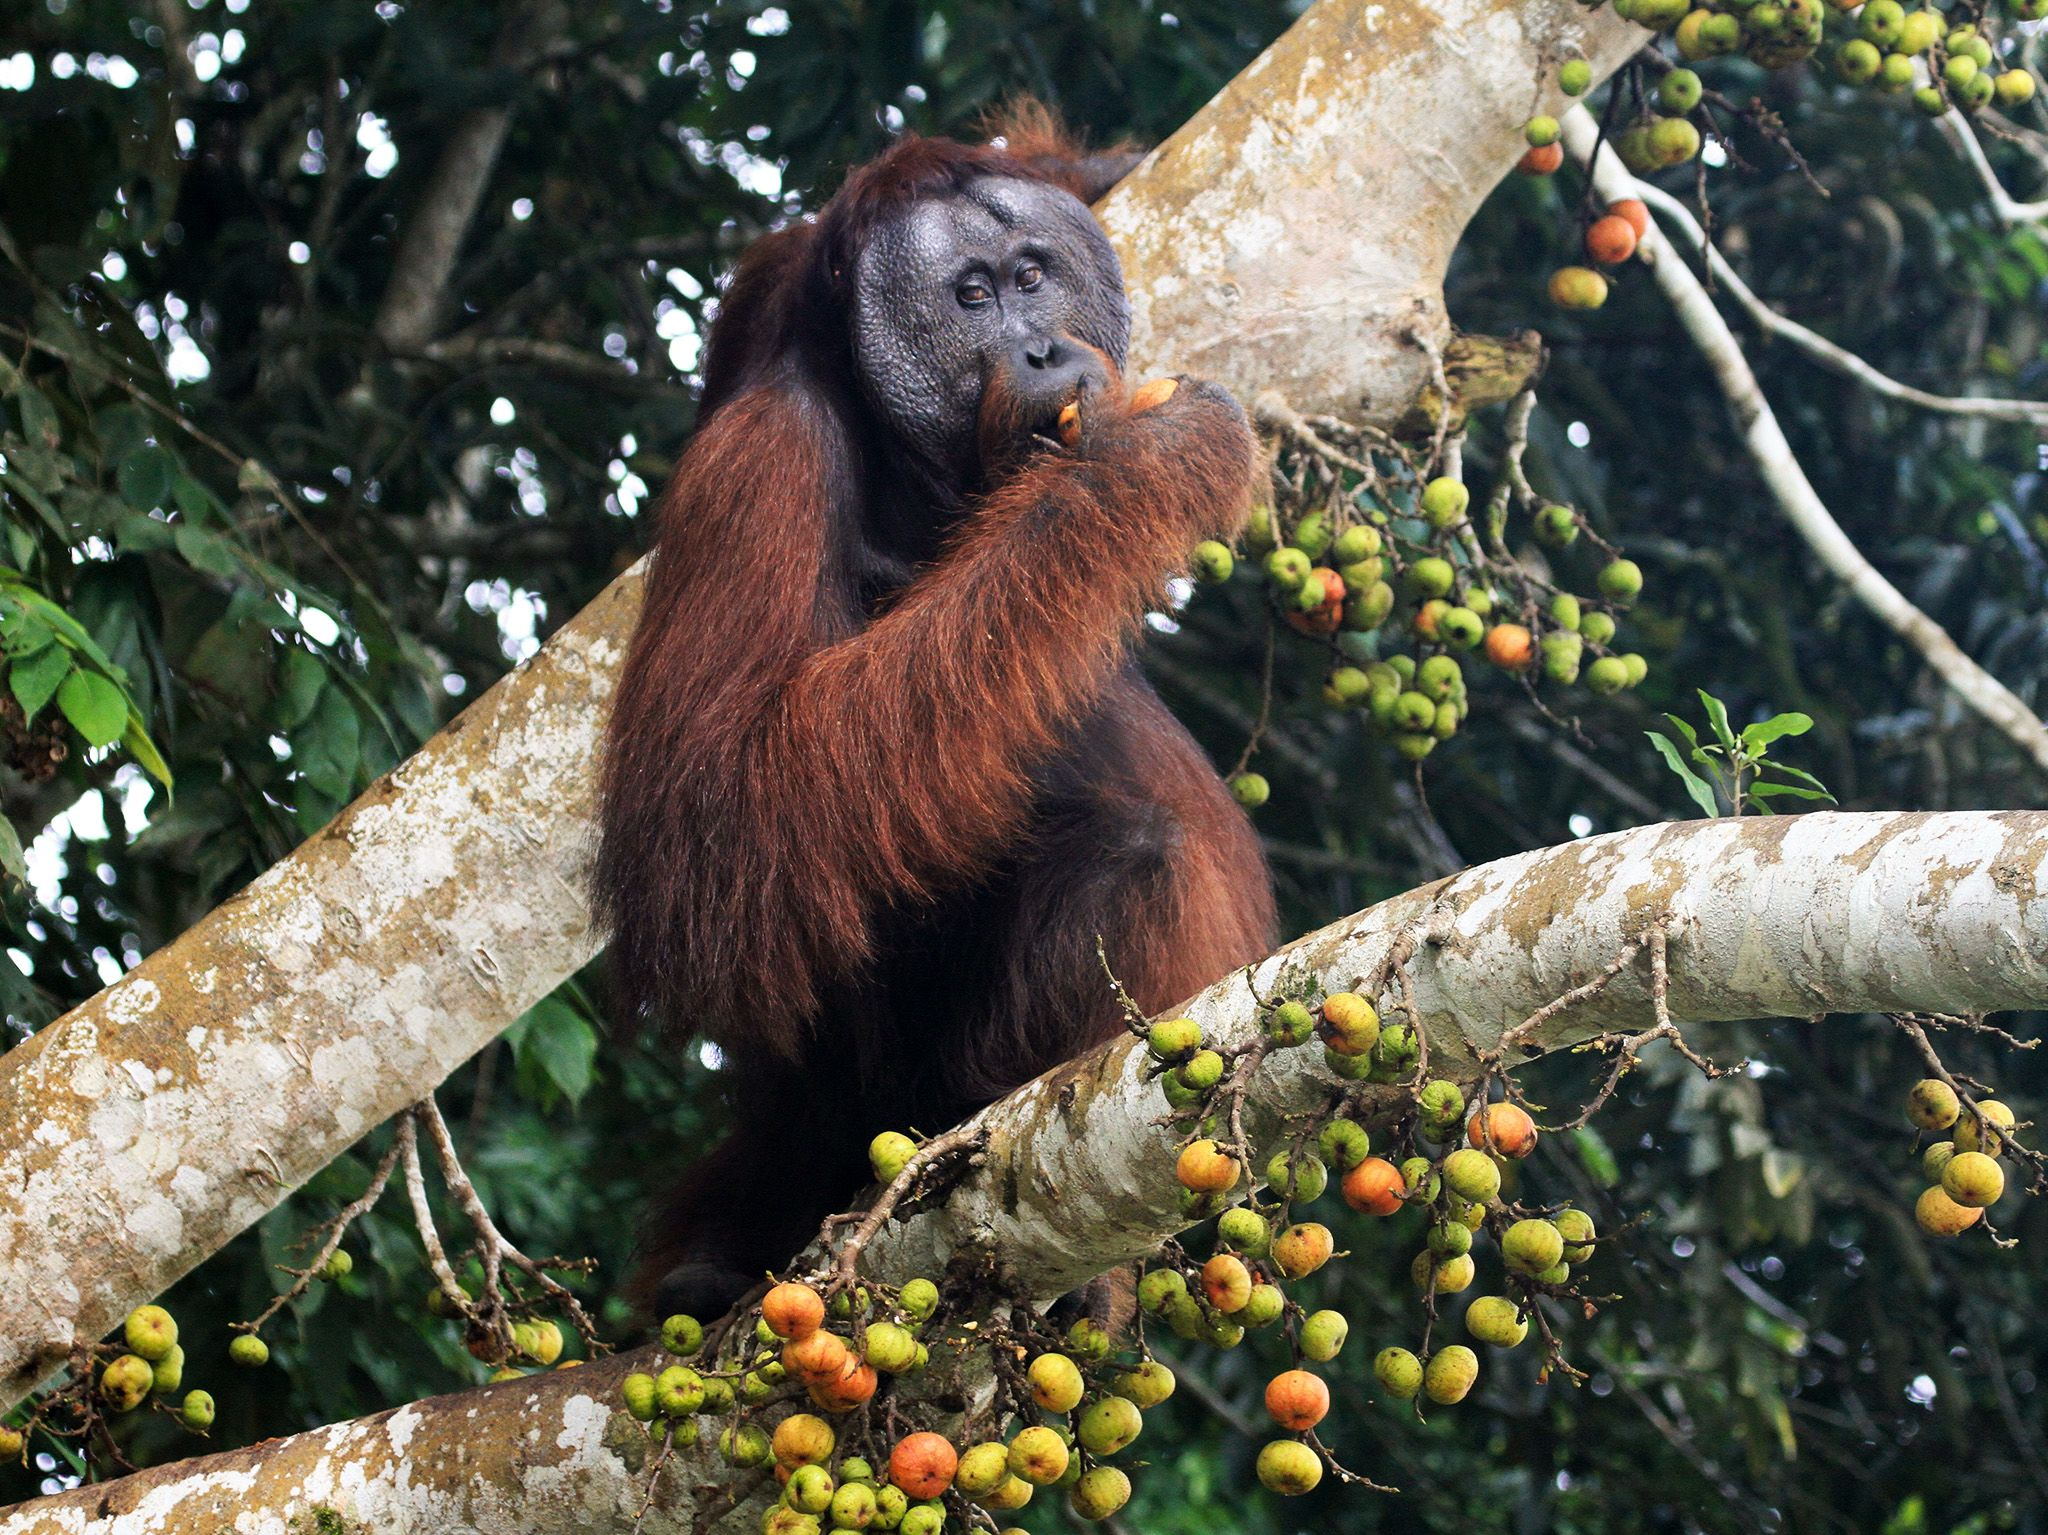 Borneo:  Mature male Orangutan sitting in tree amongst fig fruits, eating figs. This image is... [Photo of the day - October 2017]